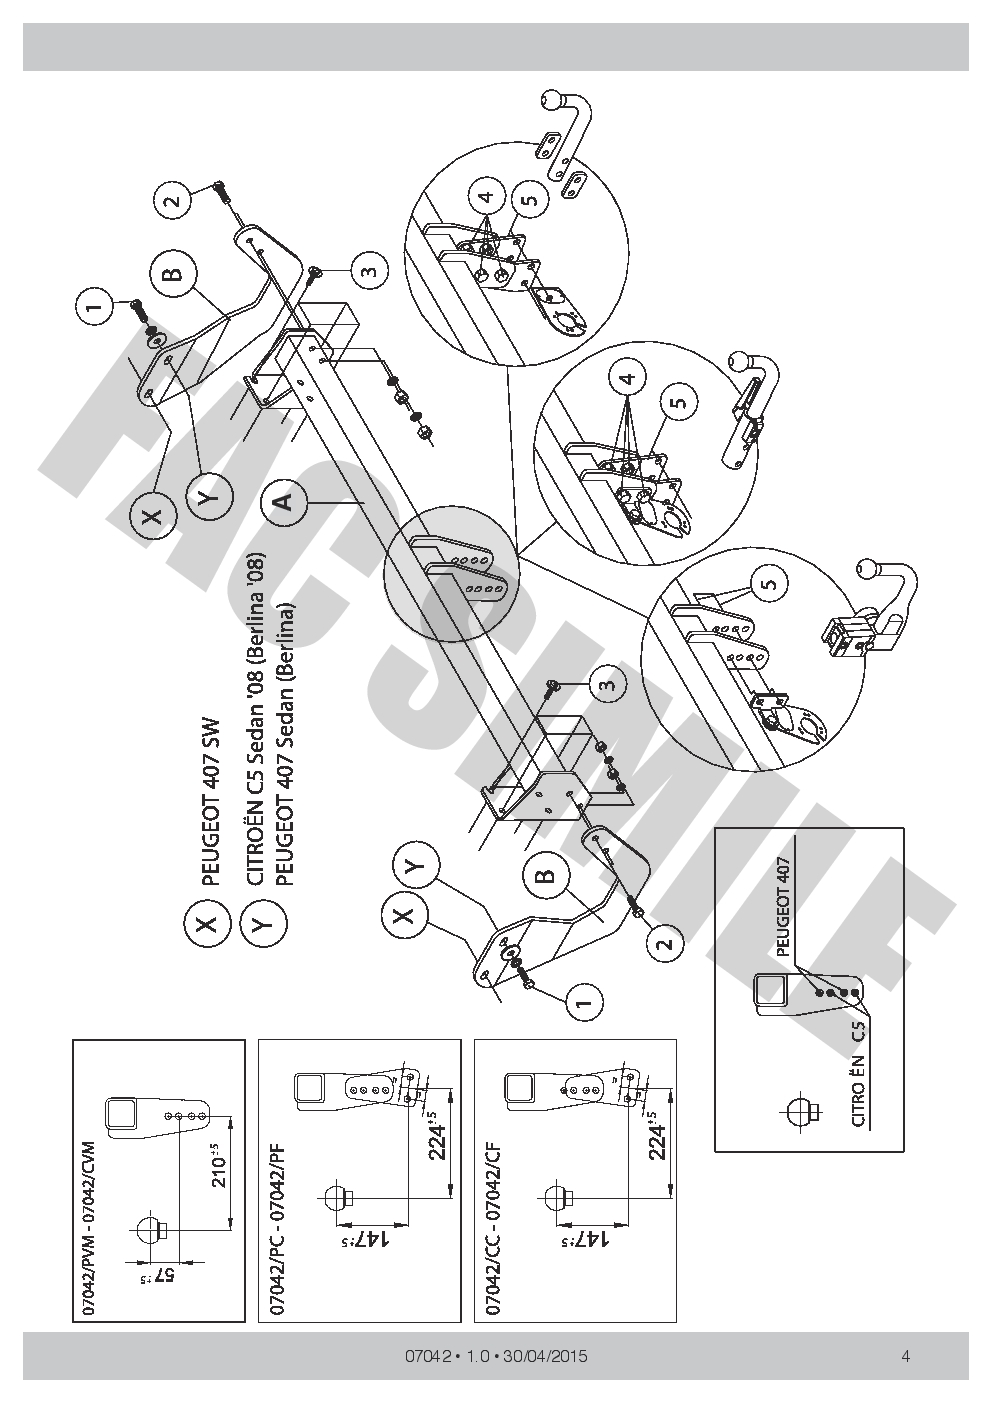 Citroen C5 Towbar Wiring Diagram - Load Wiring Diagram shy-cable -  shy-cable.ristorantesicilia.it | Citroen C3 Towbar Wiring Diagram |  | Ristorante Sicilia